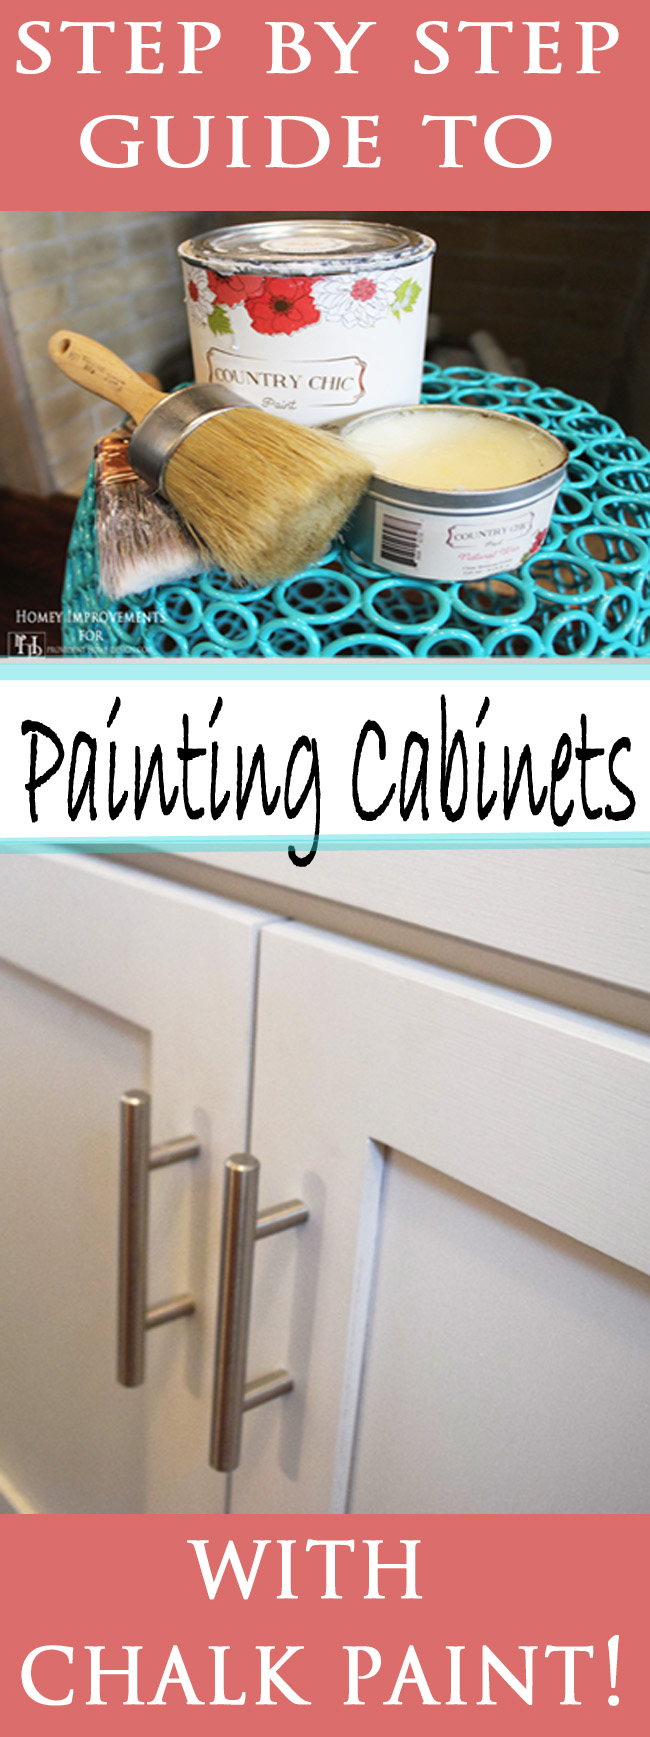 Step by Step Tutorial on how to paint cabinets with Chalk Paint